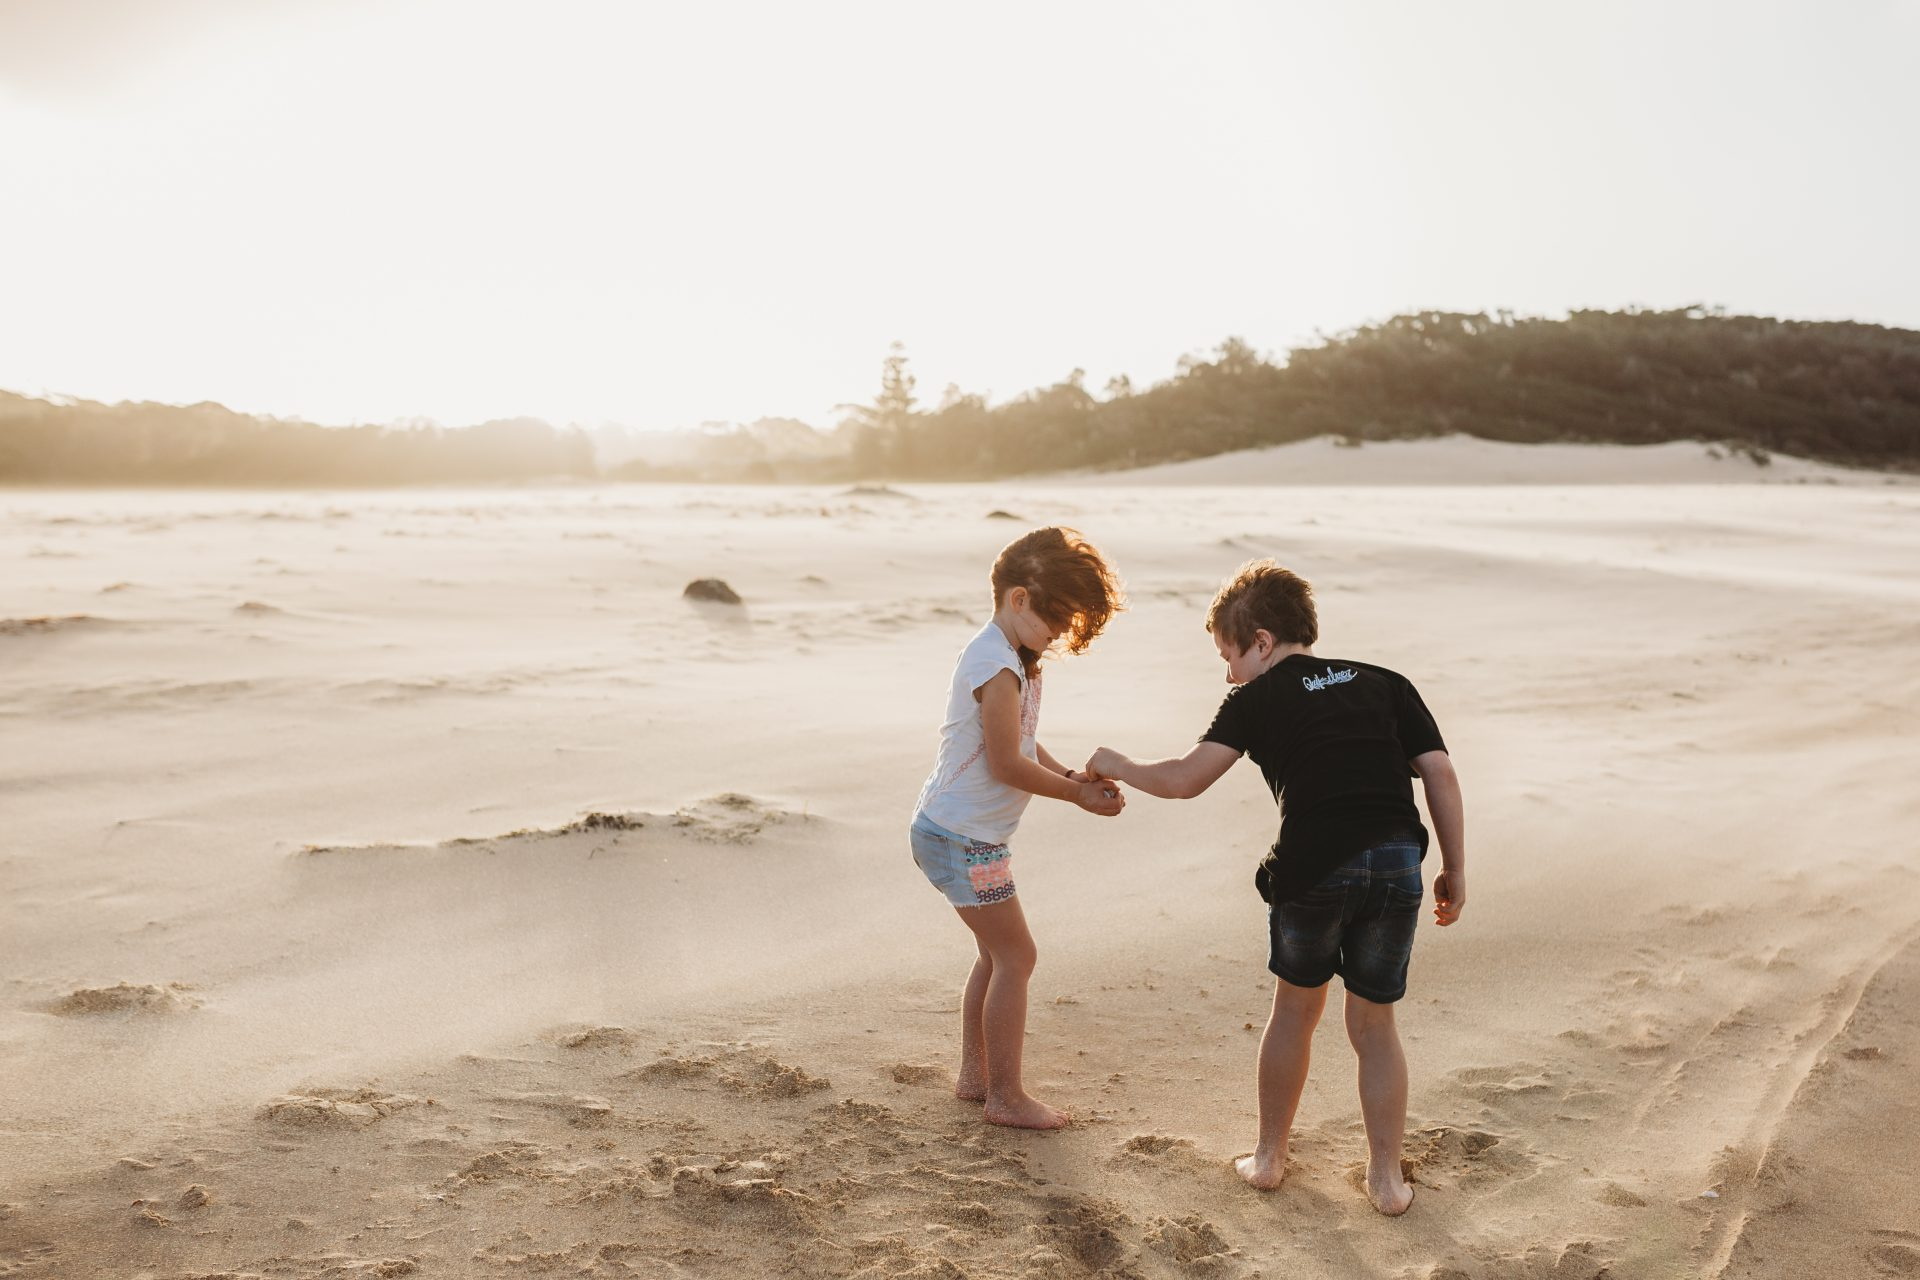 Young girl and boy collecting shells on a windy beach